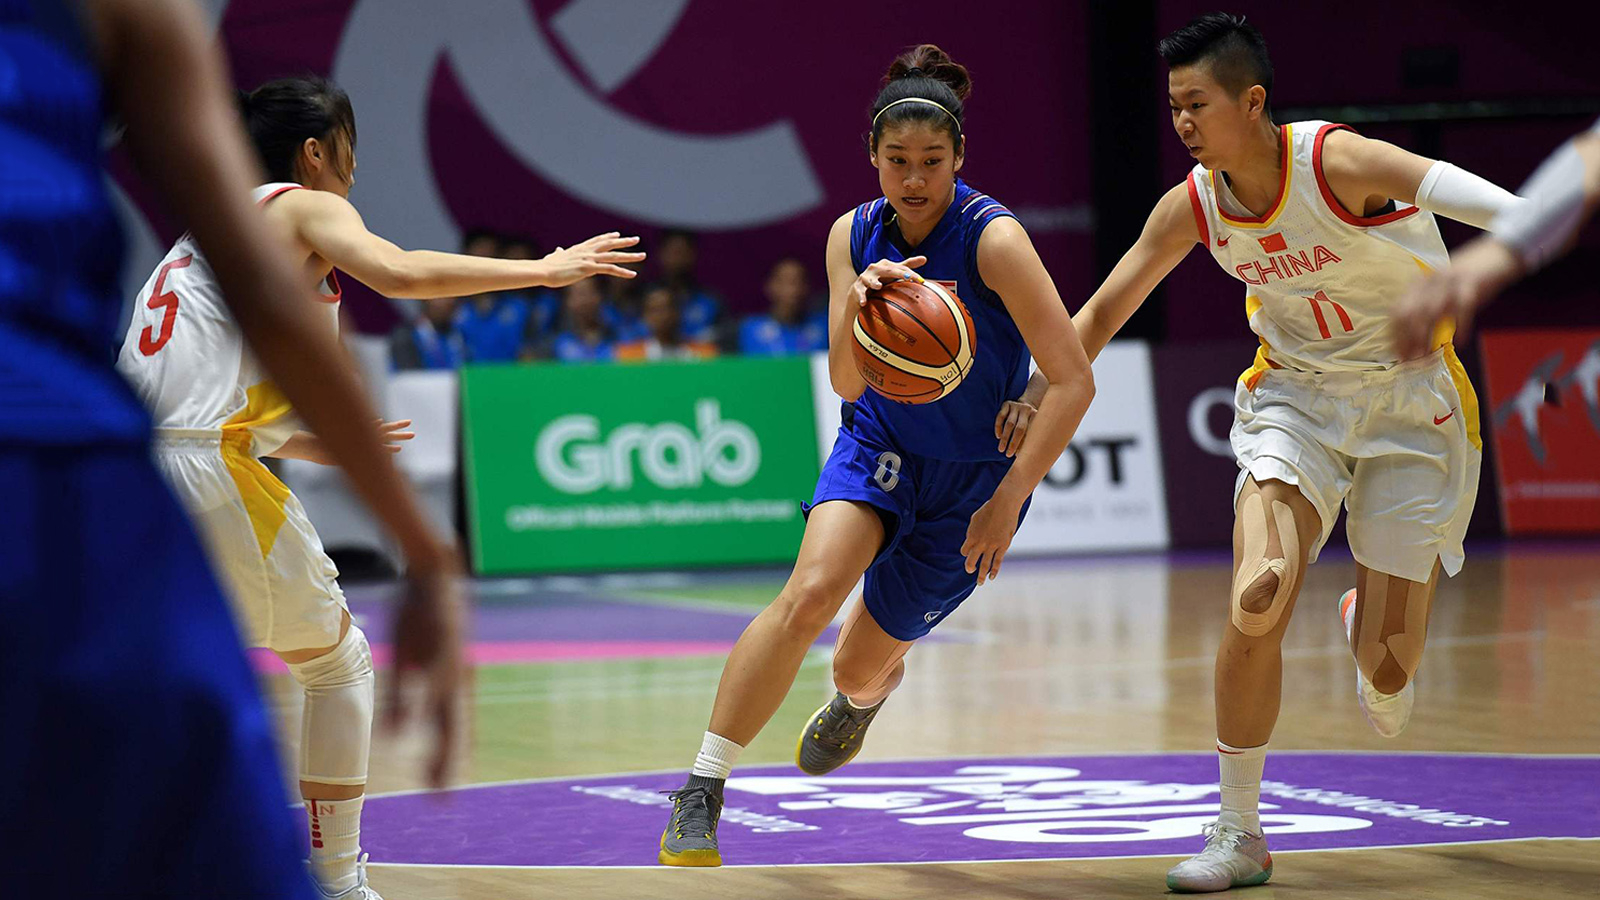 China steamroll Thailand in opening game of Asian Games